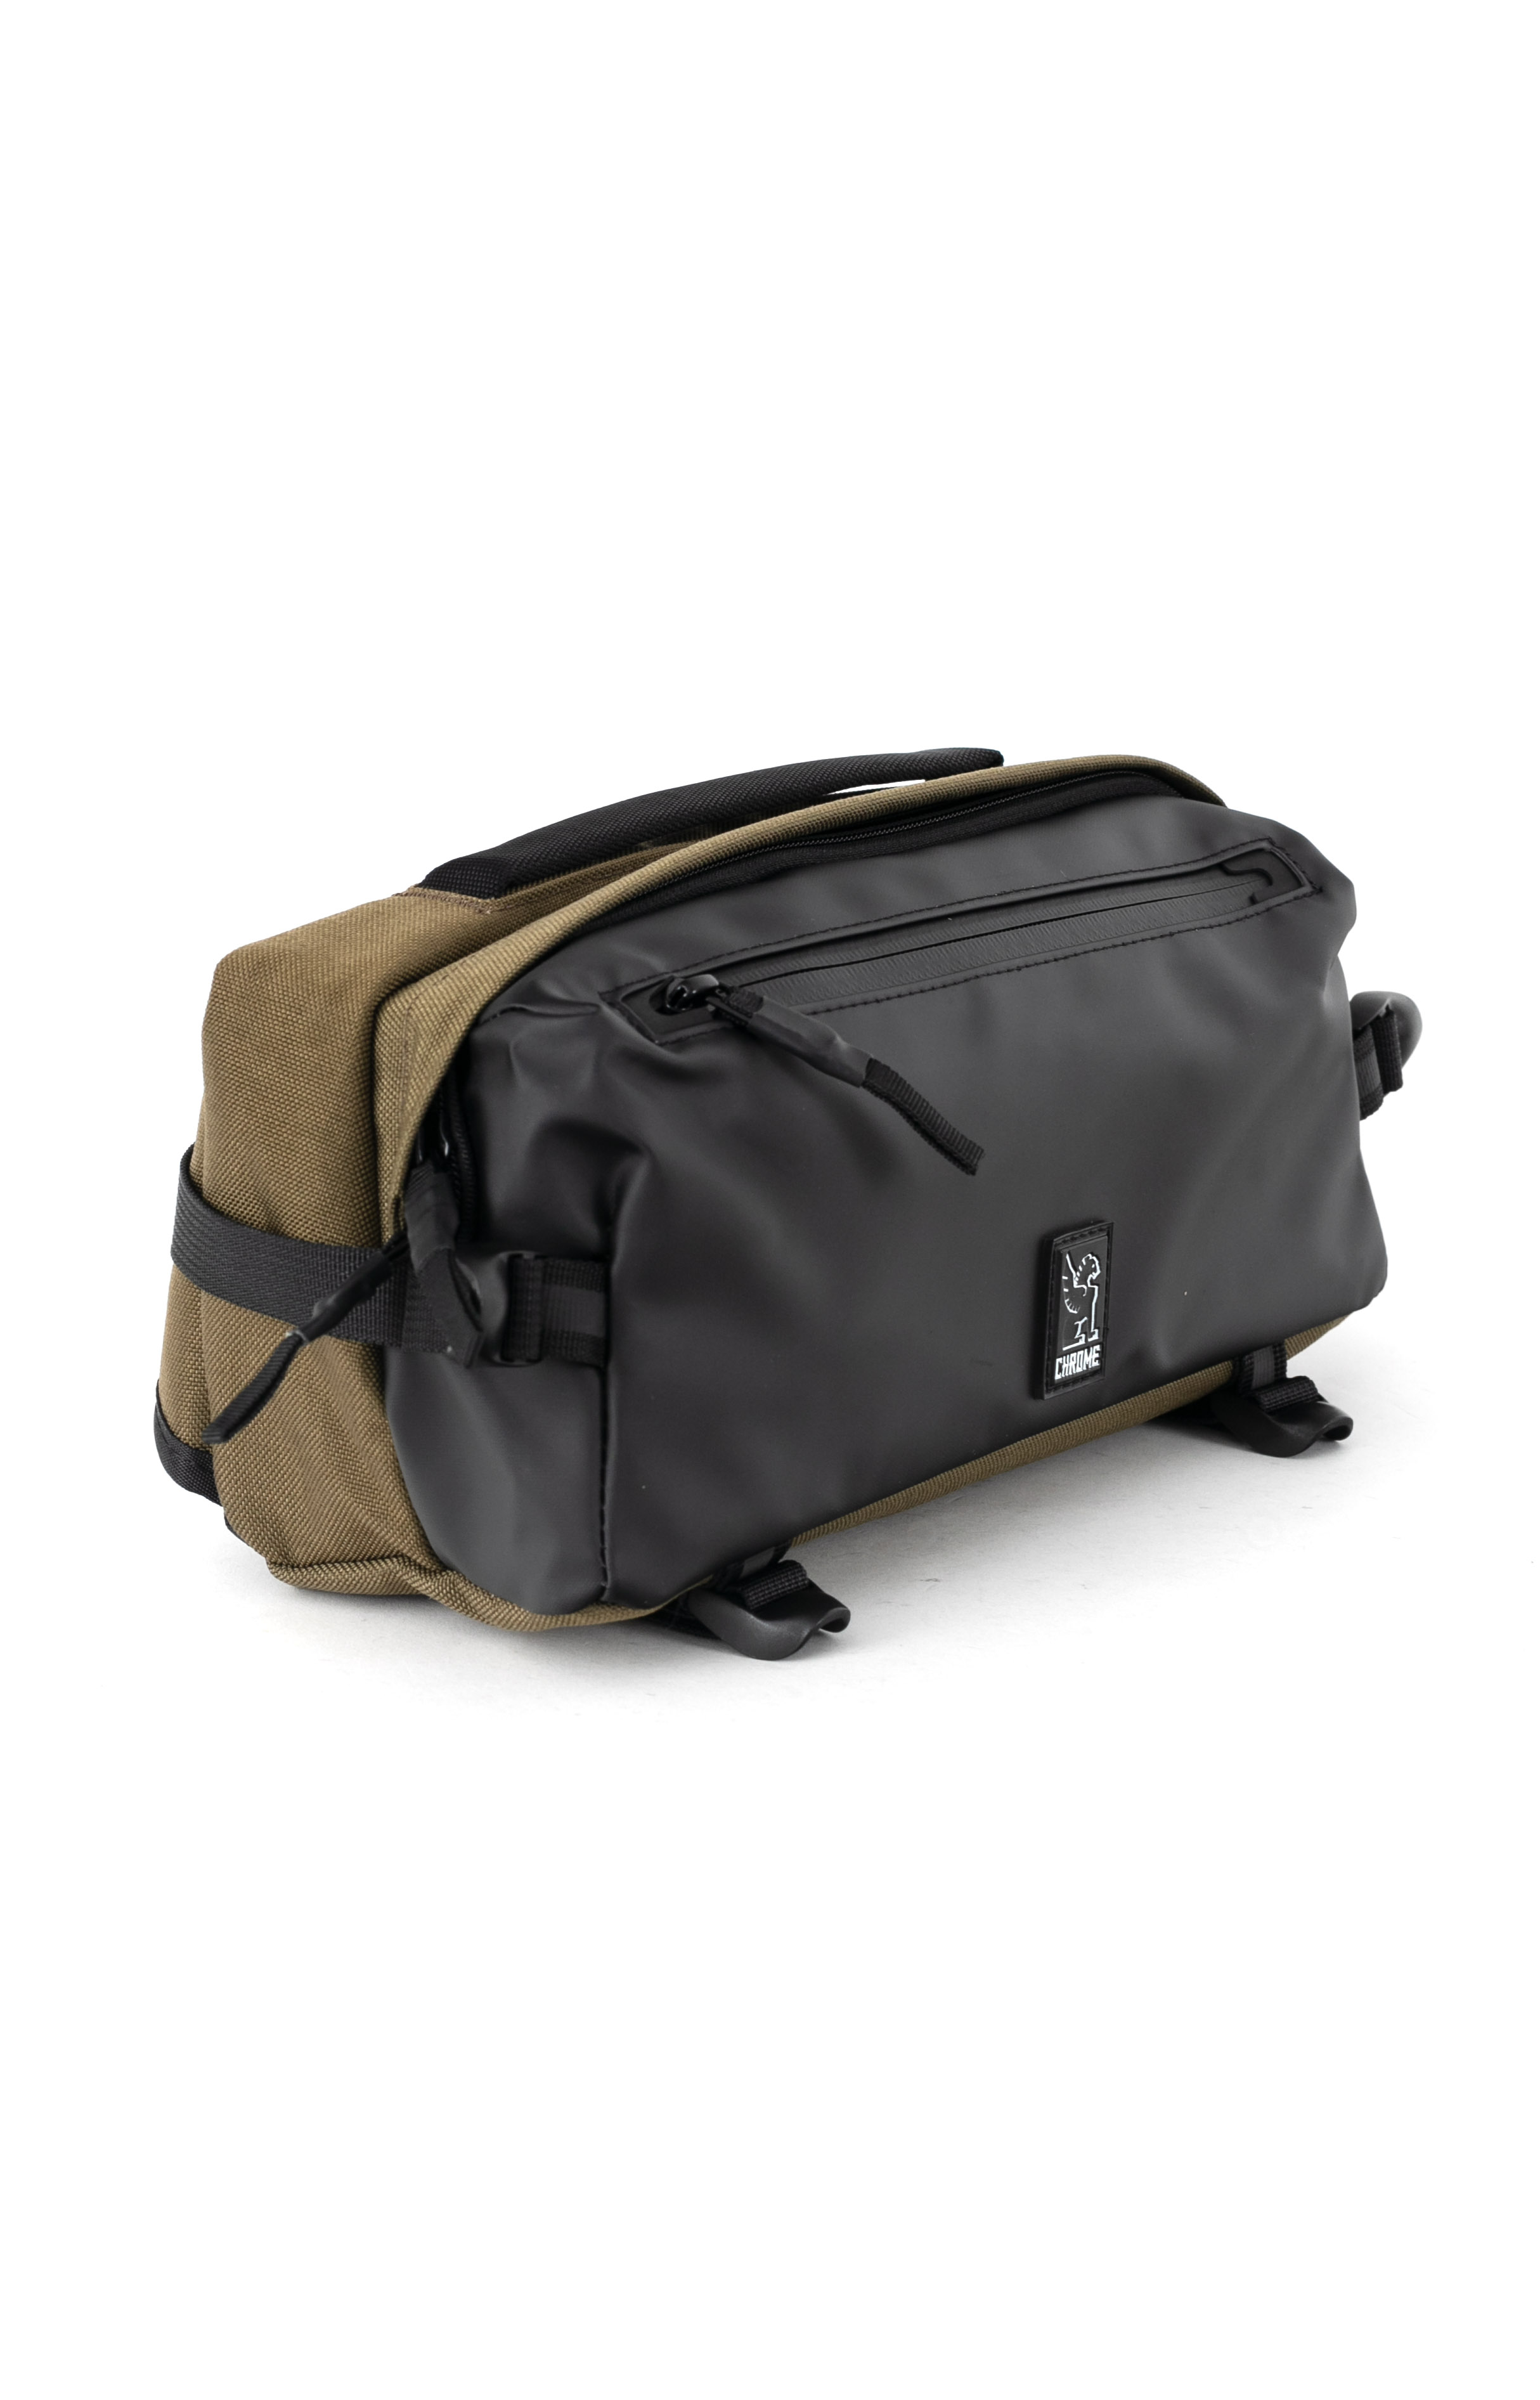 Kovac Sling Bag - Ranger/Black 2